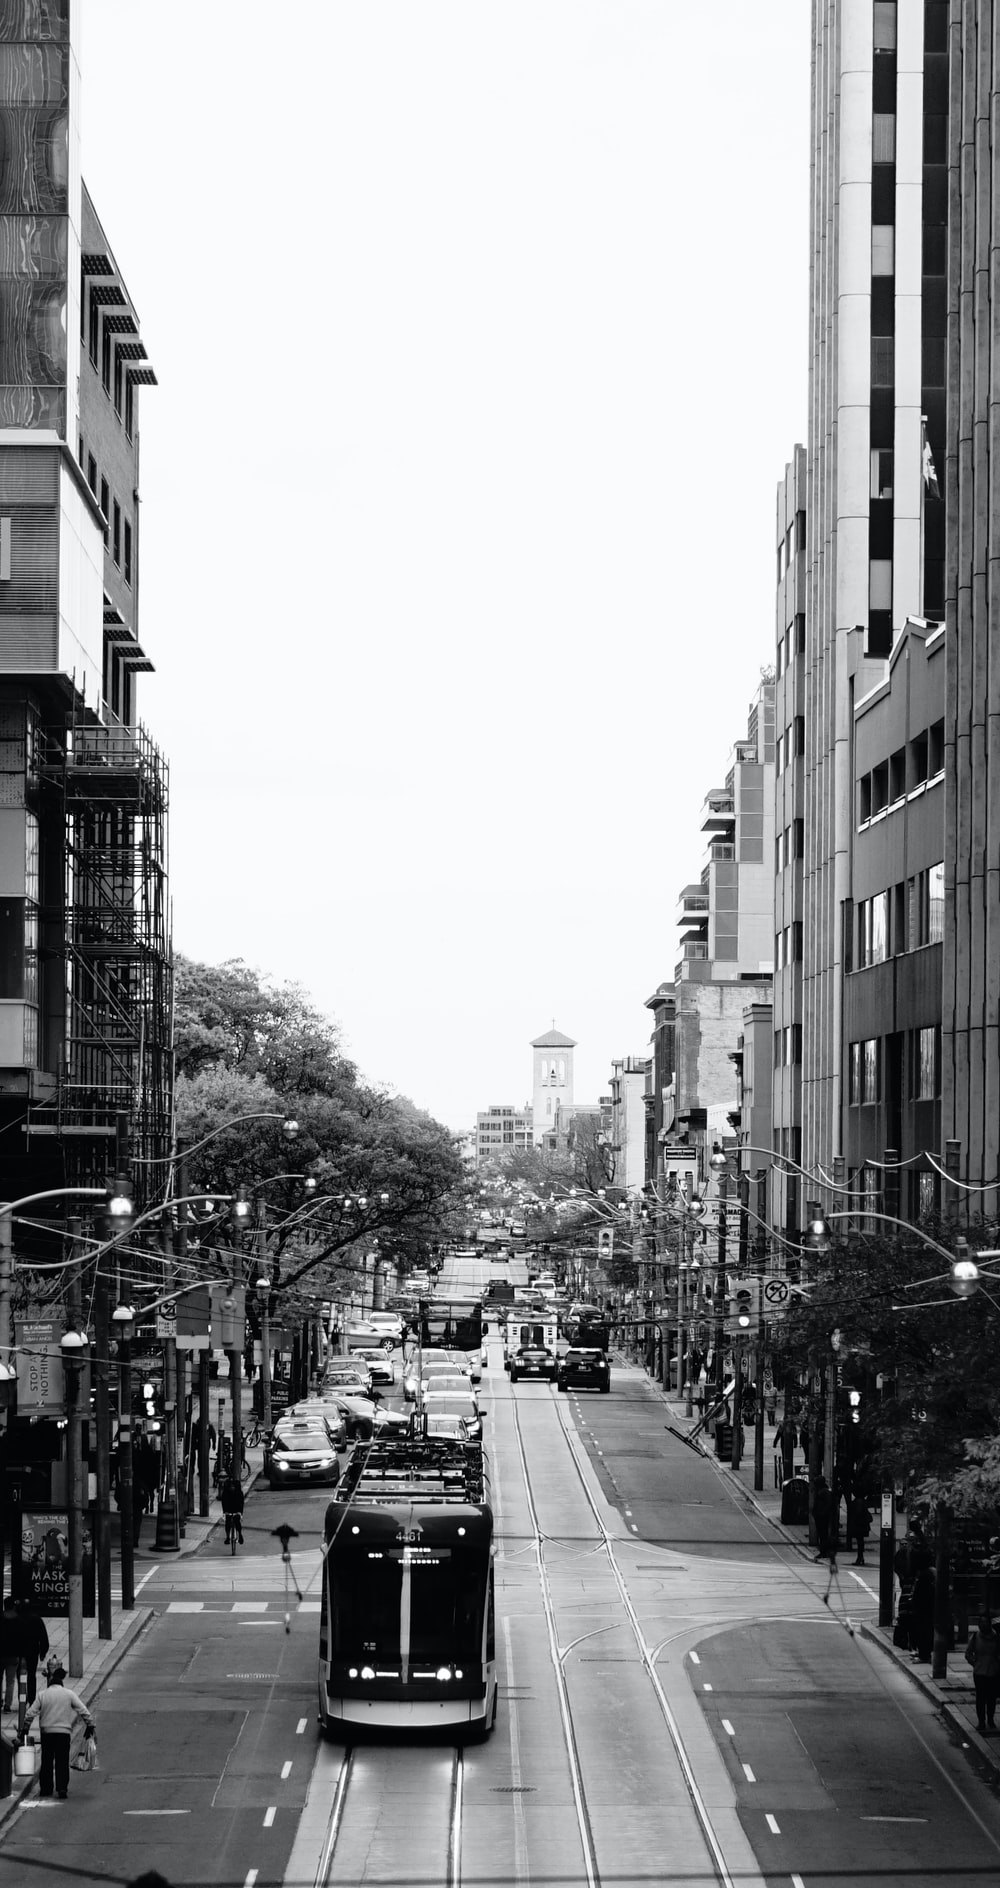 grayscale photography of a tram passing by city street